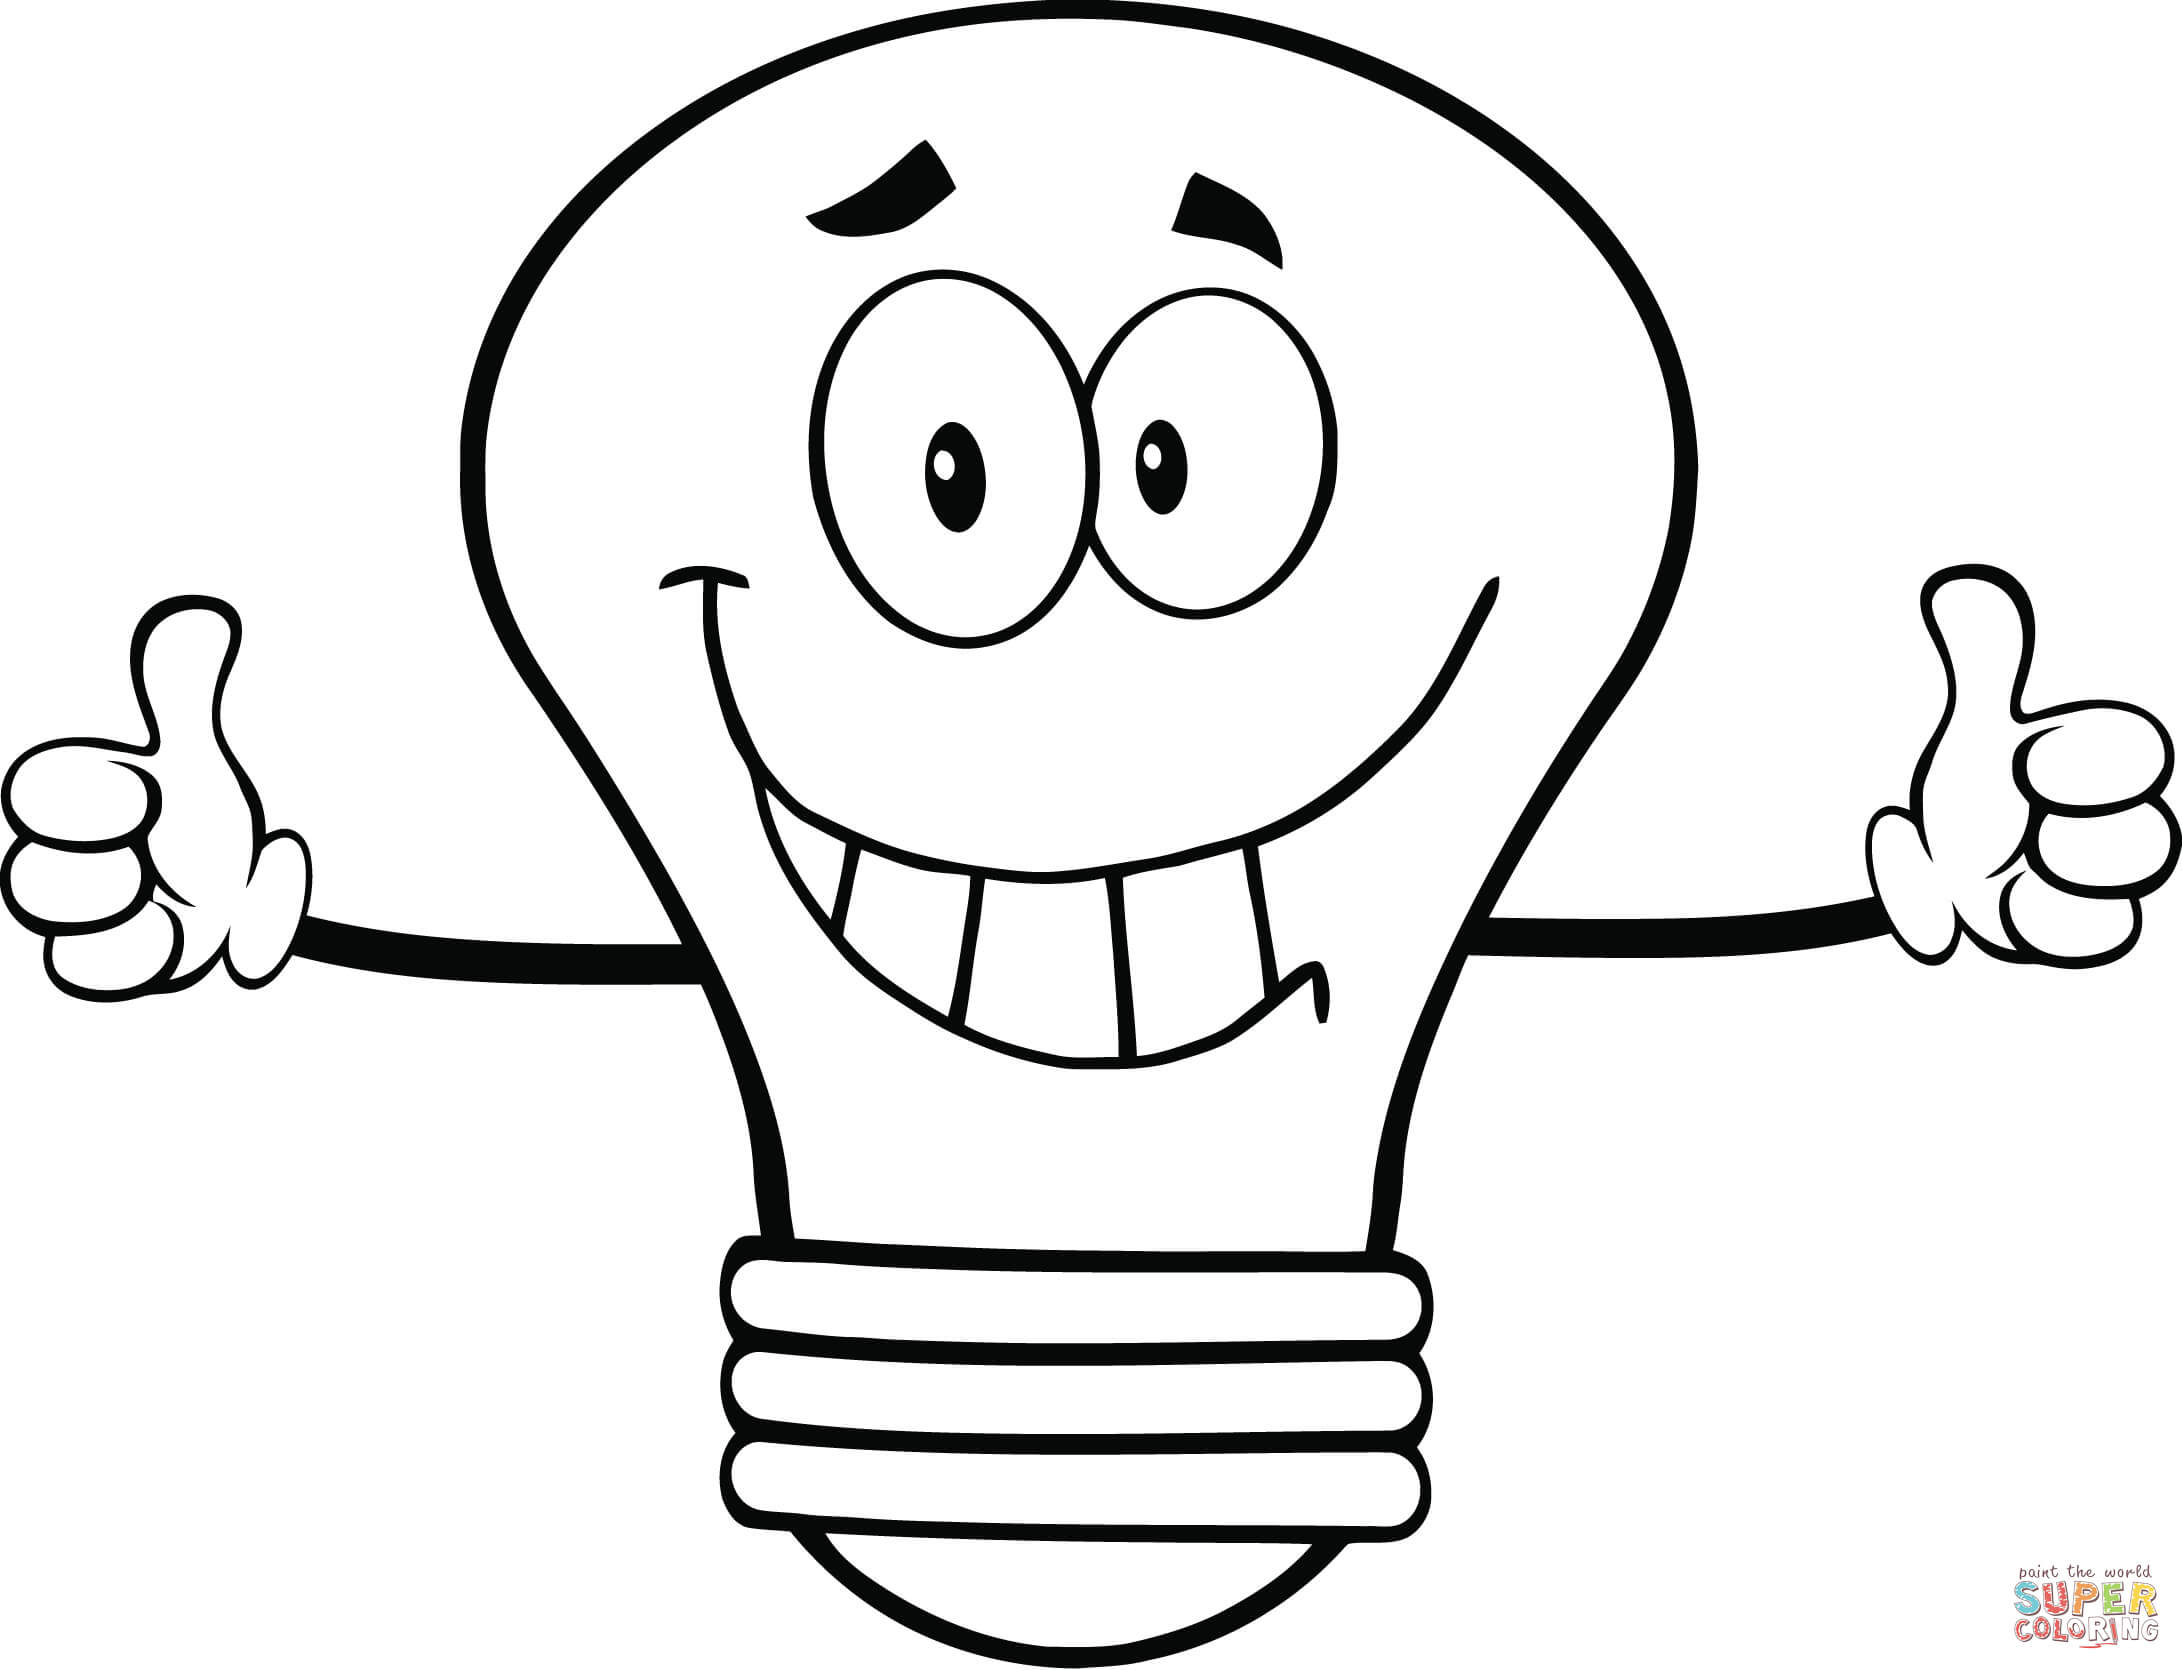 2182x1670 Light Bulb Coloring Page Free Printable Coloring Pages